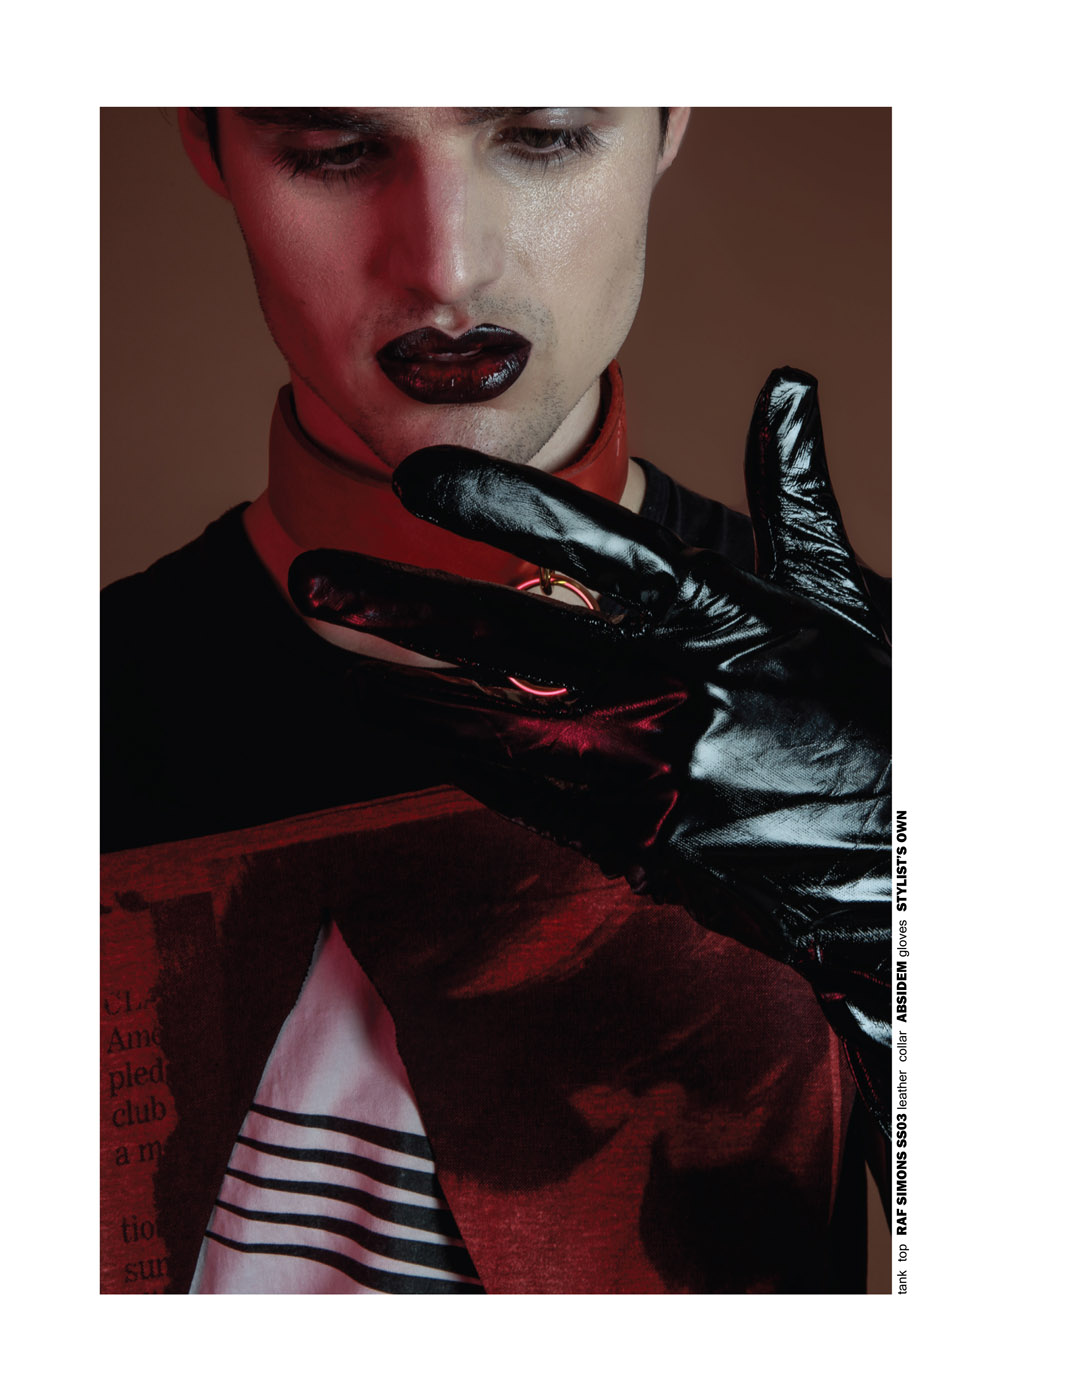 Bring On The Night, We Don't Care by Lorenzo Marcucci for CHASSEUR MAGAZINE ISSUE #11 - YOURS WAS THE BODY